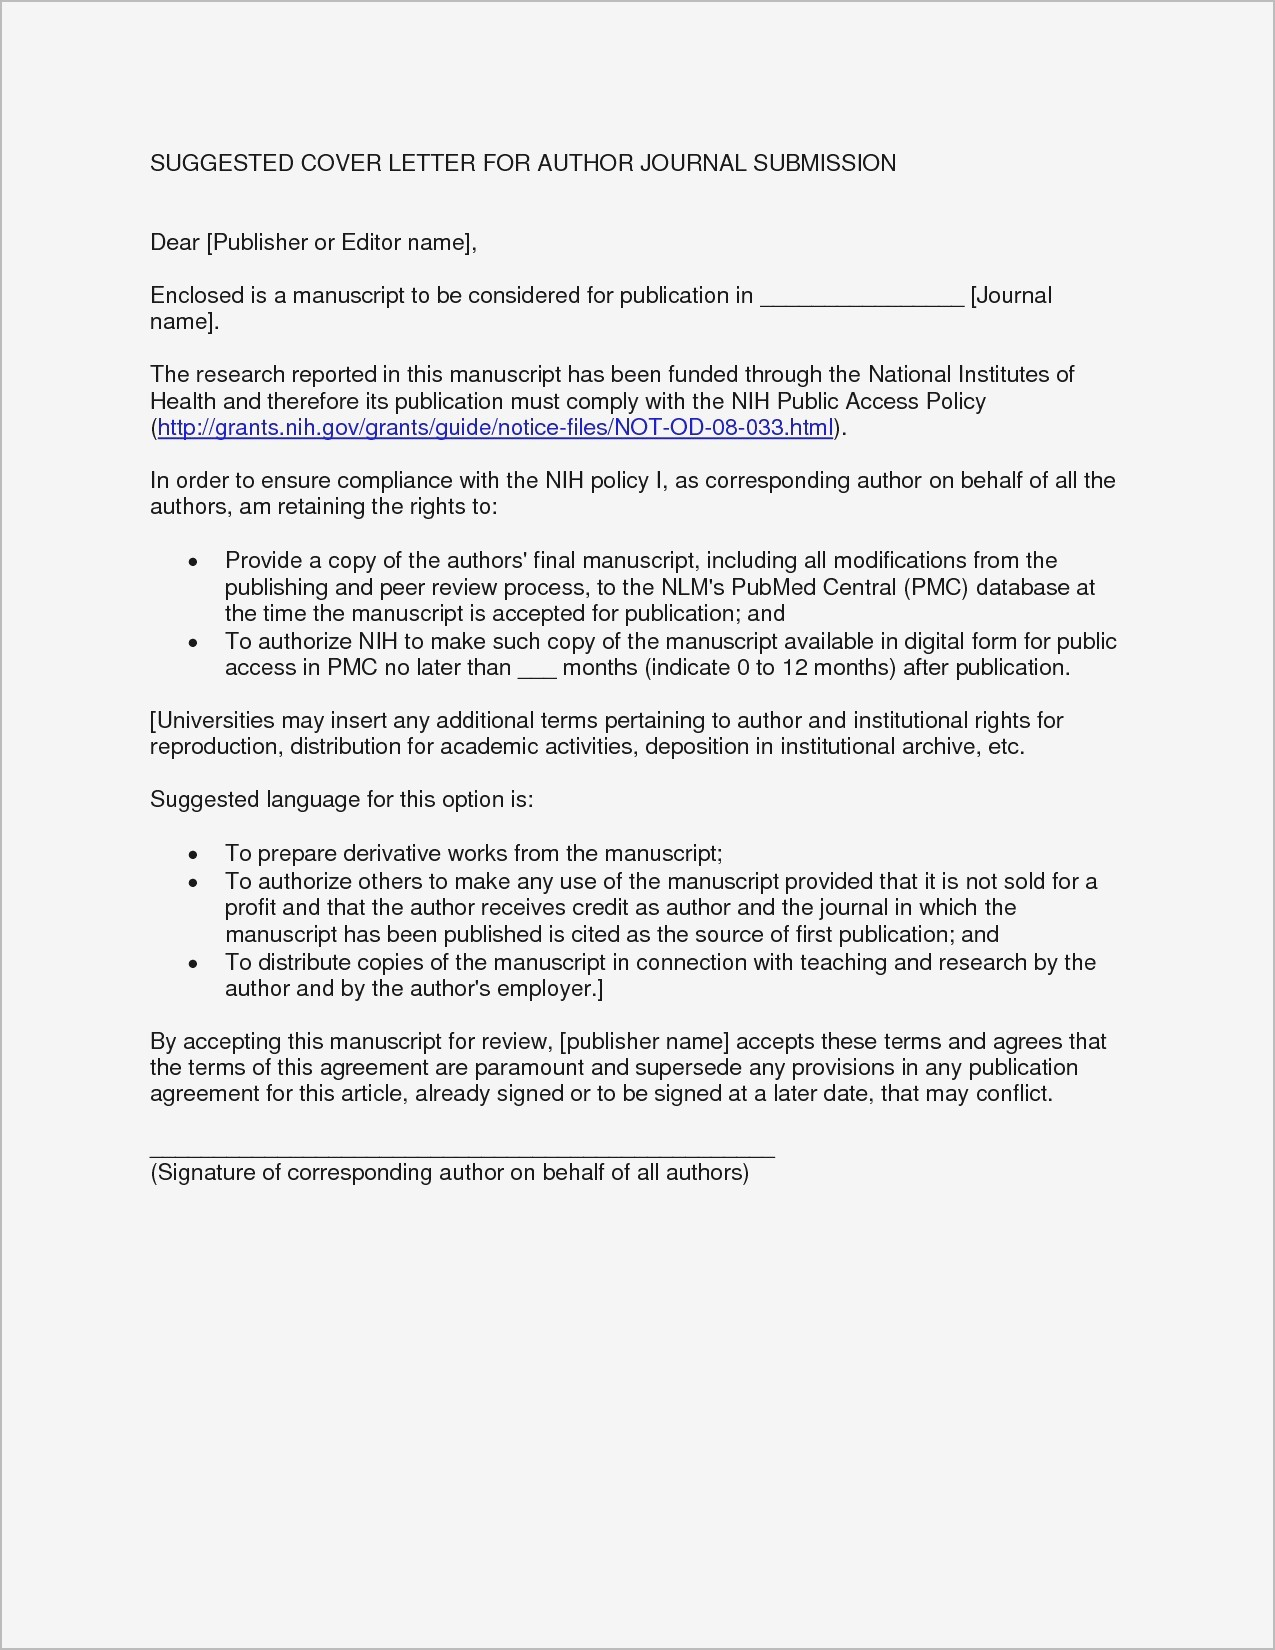 Letter Of Compliance Template - Writing Business Requirements Template Best Fax Cover Letter